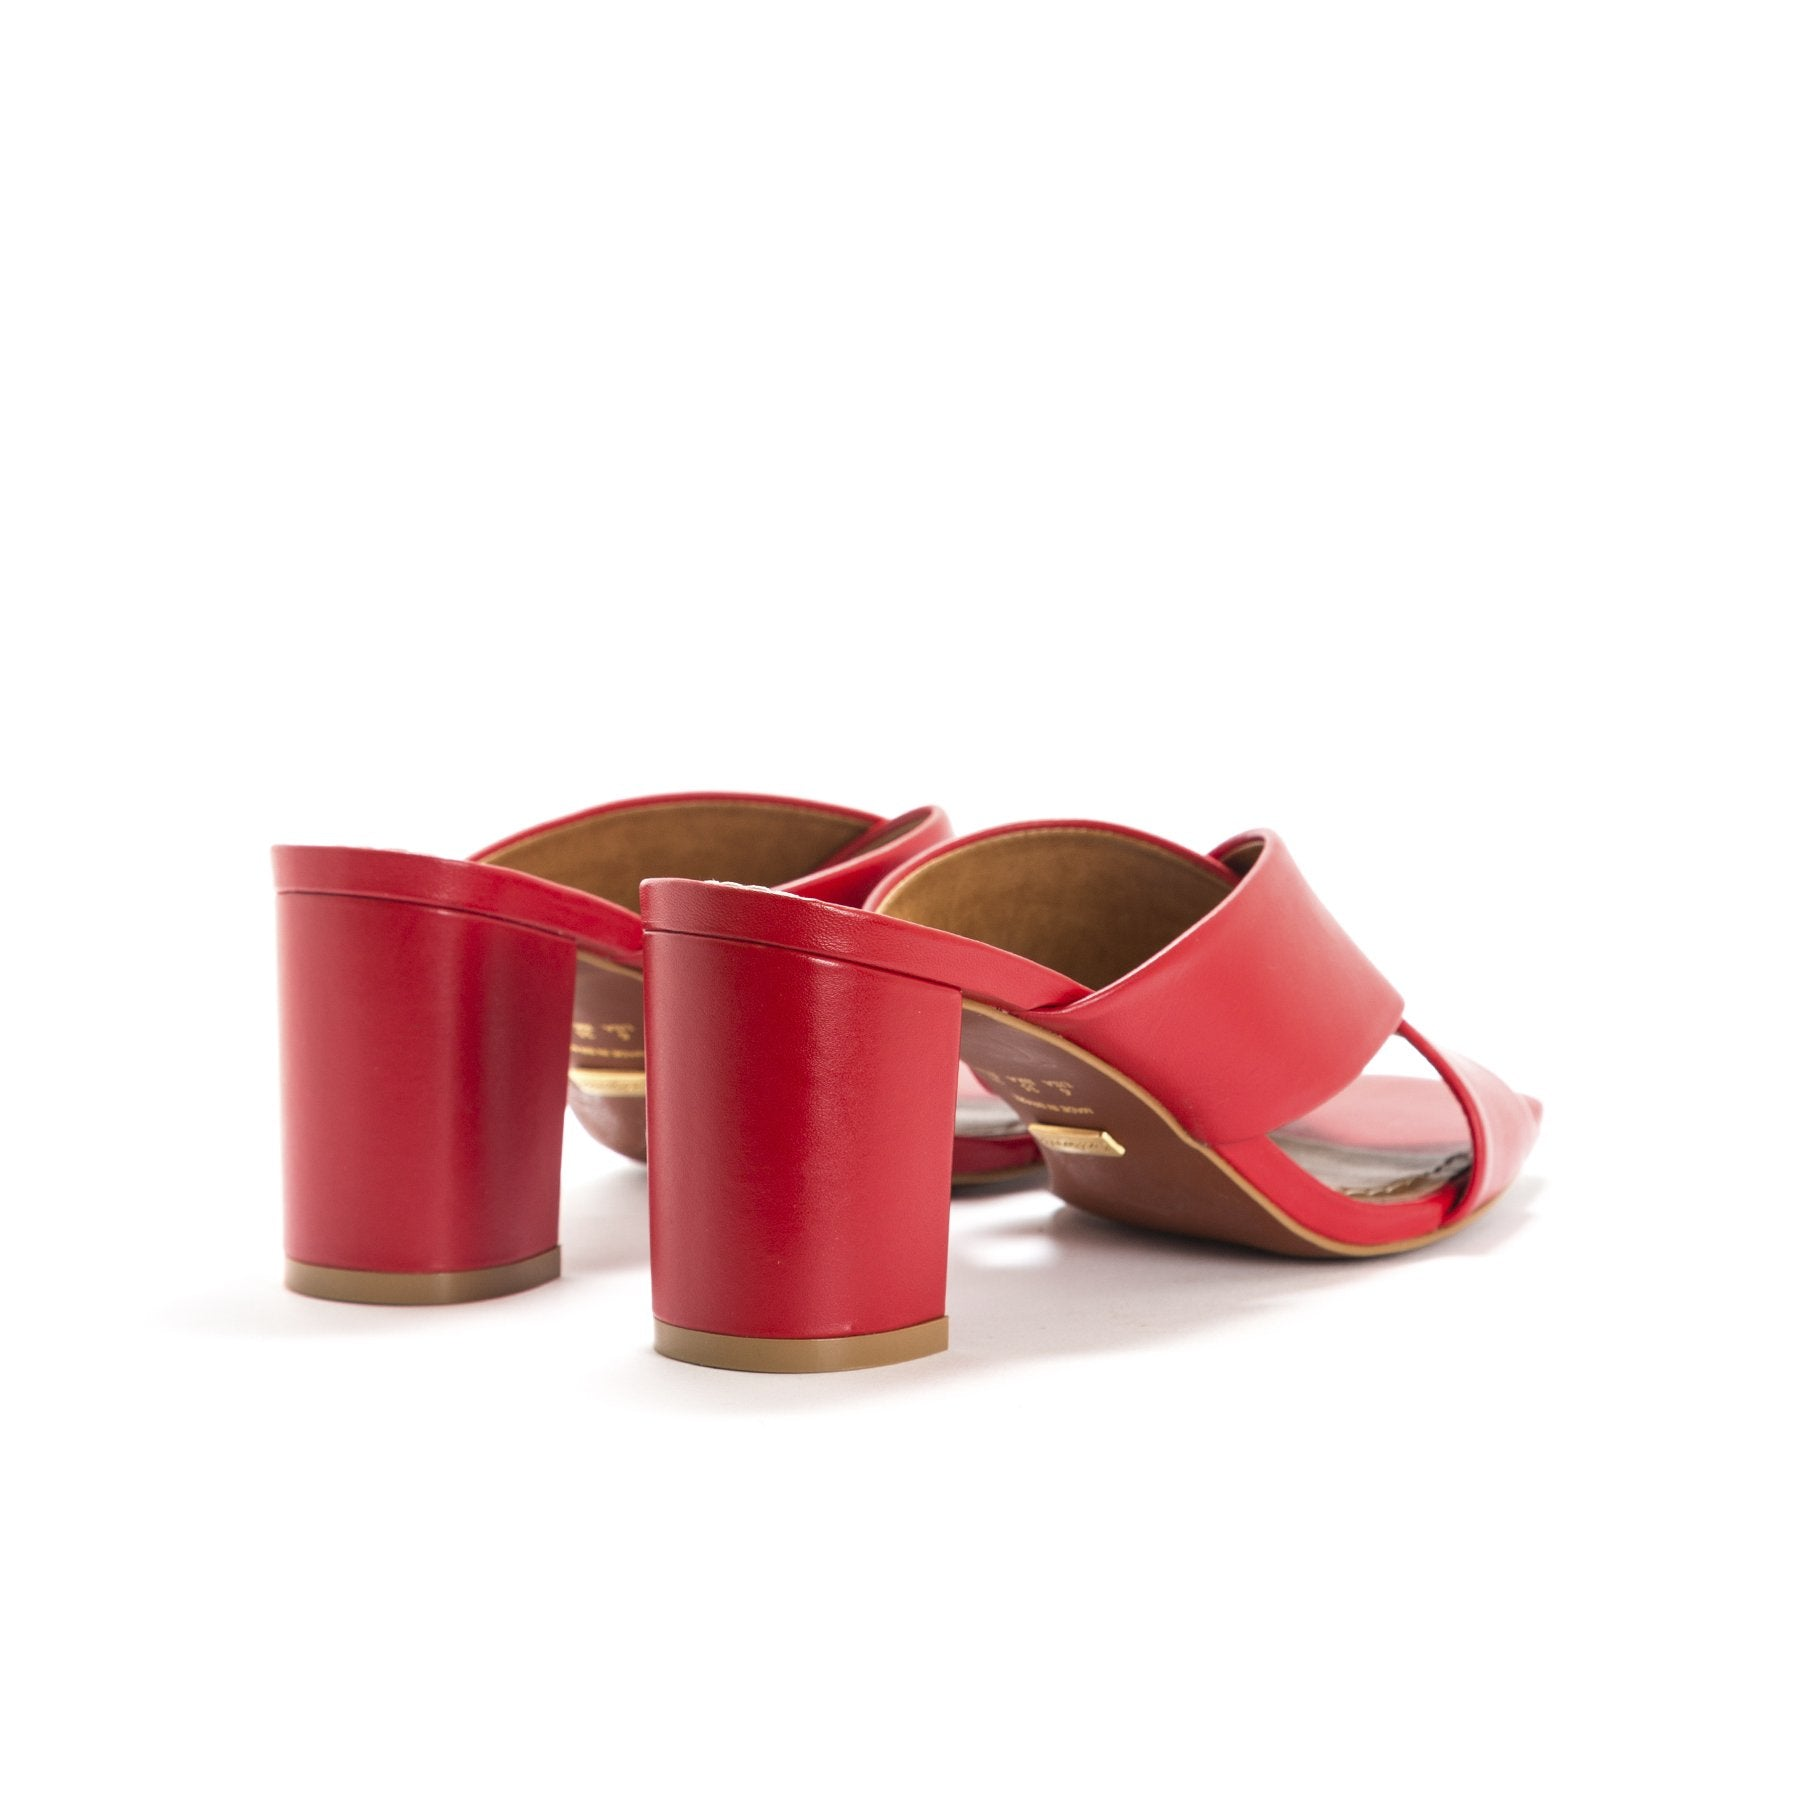 Venizia Red Leather-SOLD OUT